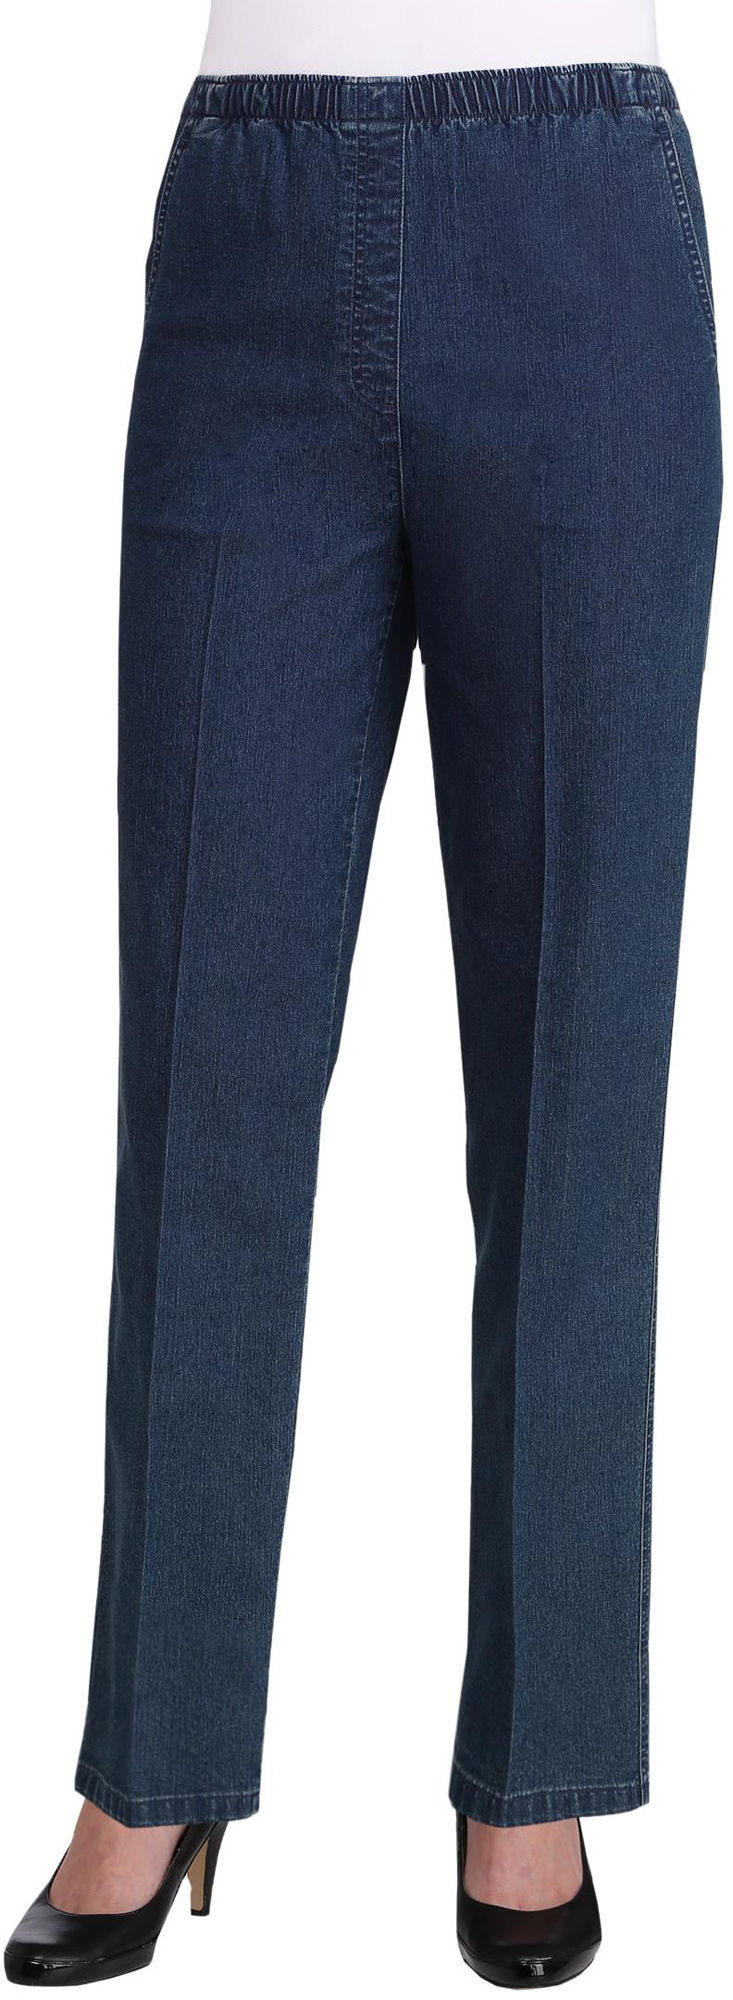 Alia petite chambray denim pull on jeans ebay for Chambray jeans